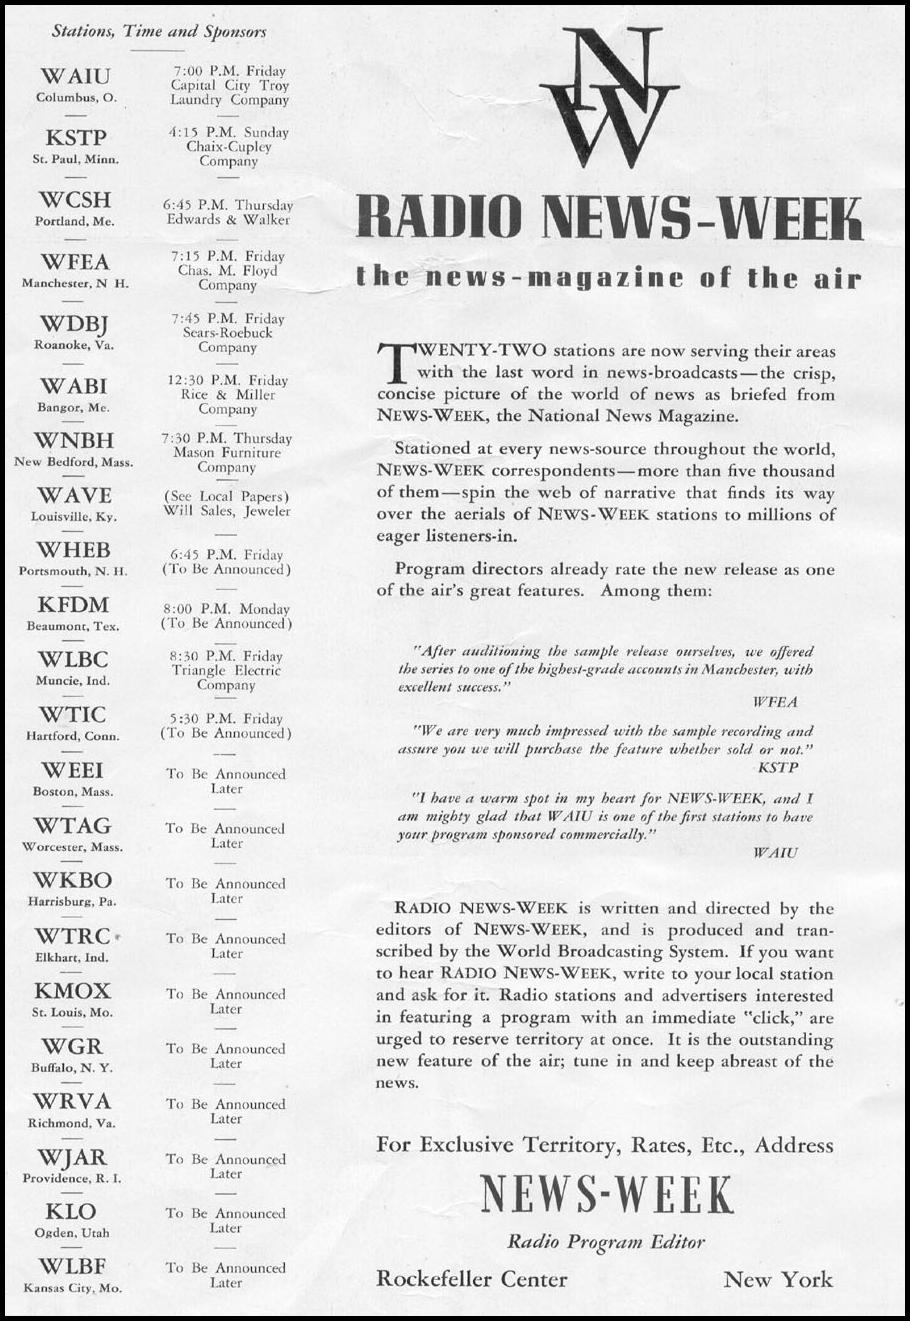 RADIO NEWS-WEEK